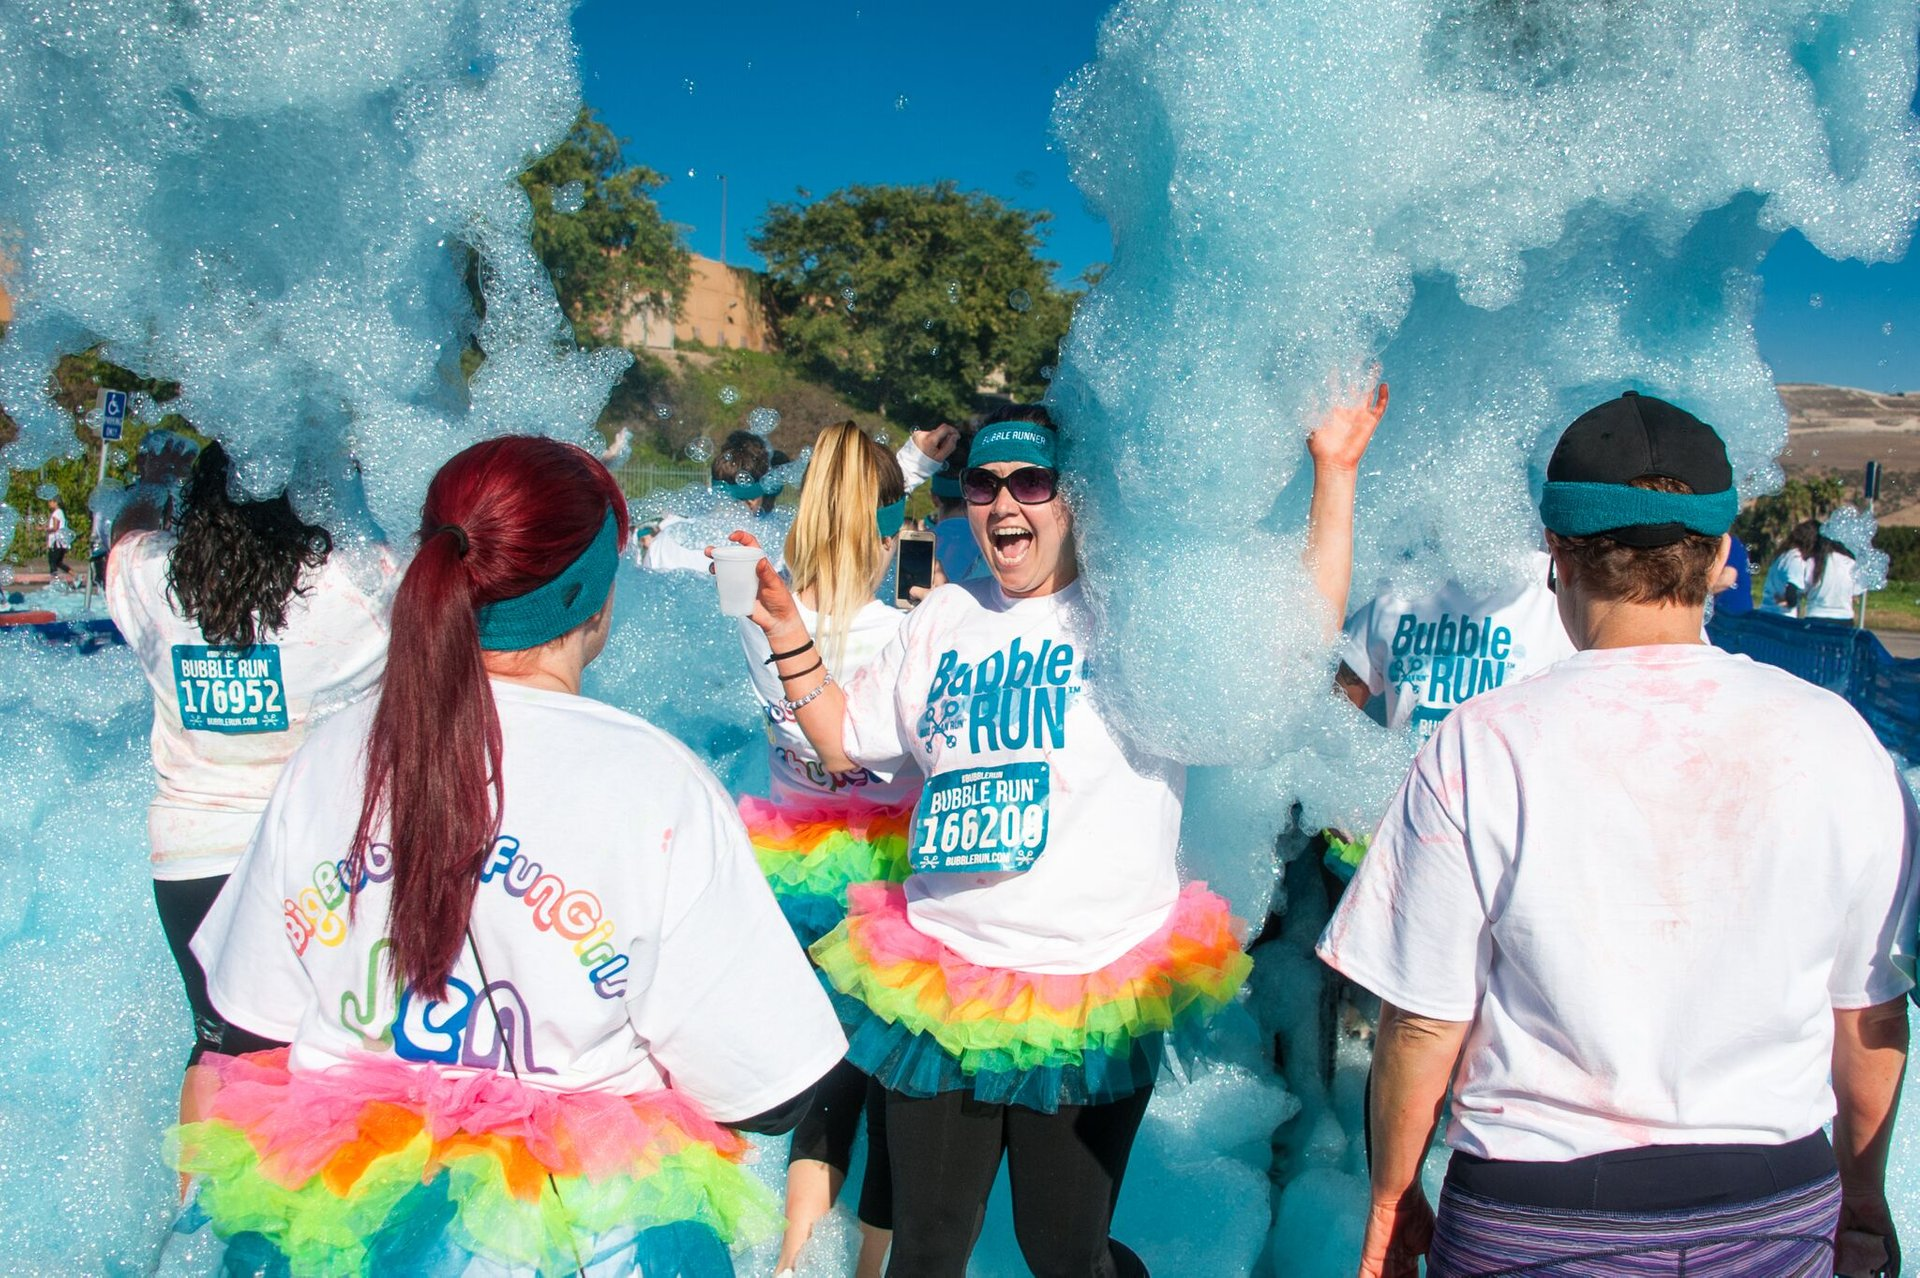 Best time to see Bubble Run in San Diego 2020